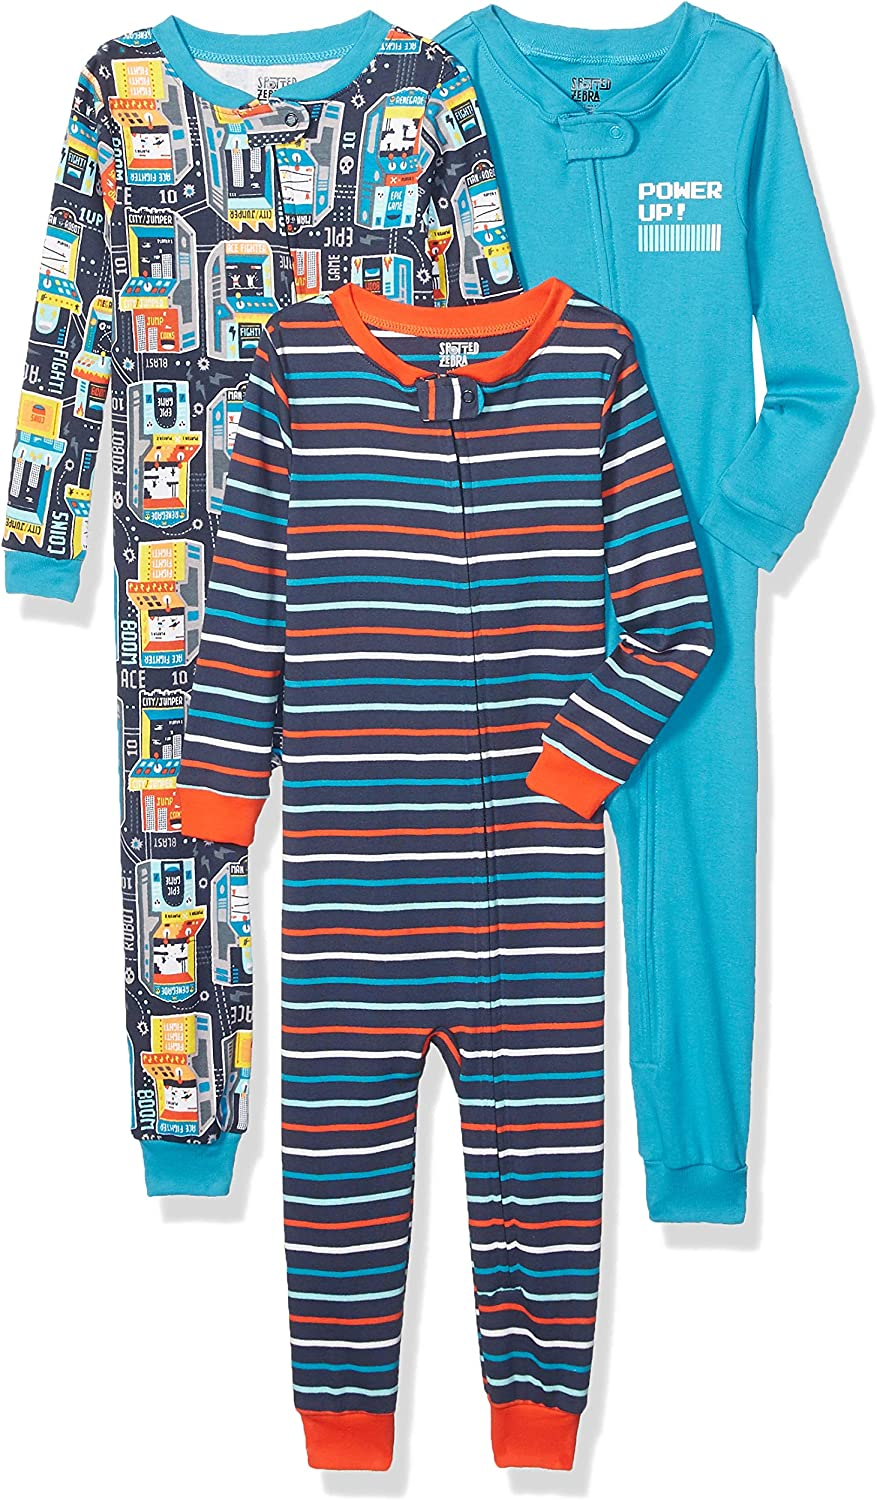 Spotted Zebra Unisex Kids 3-Pack Snug-fit Cotton Footless Sleeper Pajamas